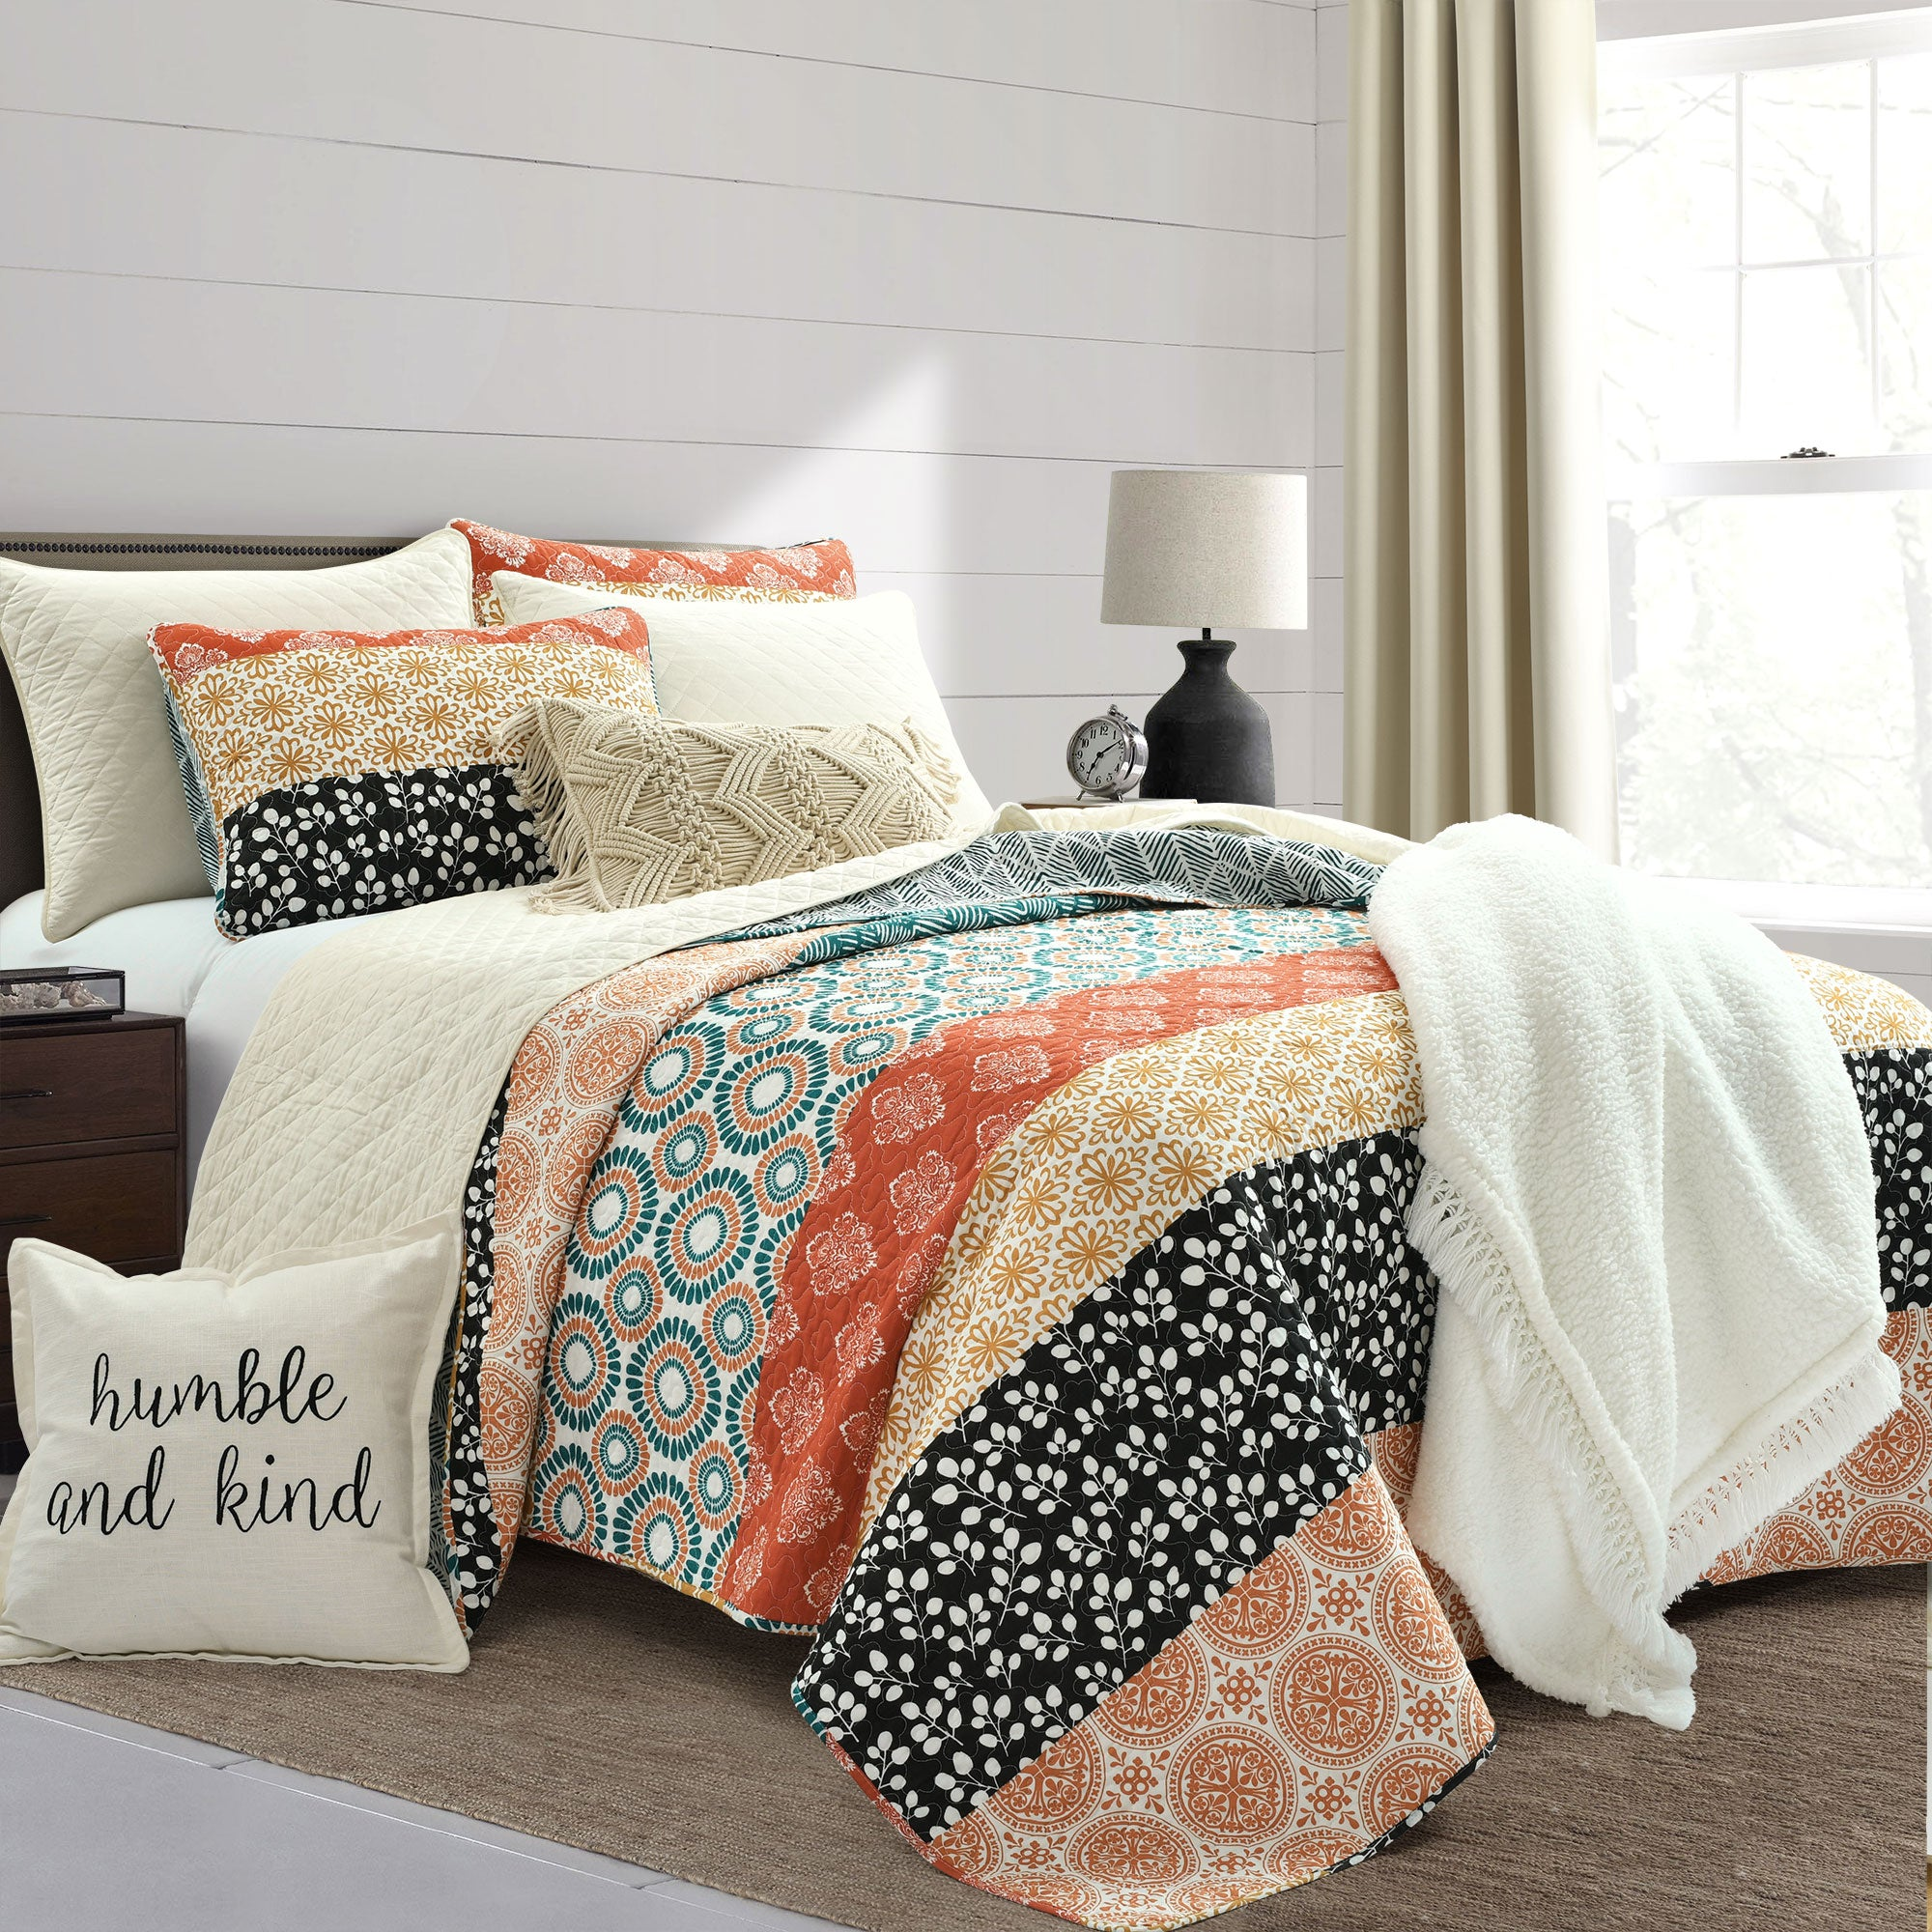 Bedding Bundle: Bohemian Stripe Quilt Set + Ava Diamond Quilt Set